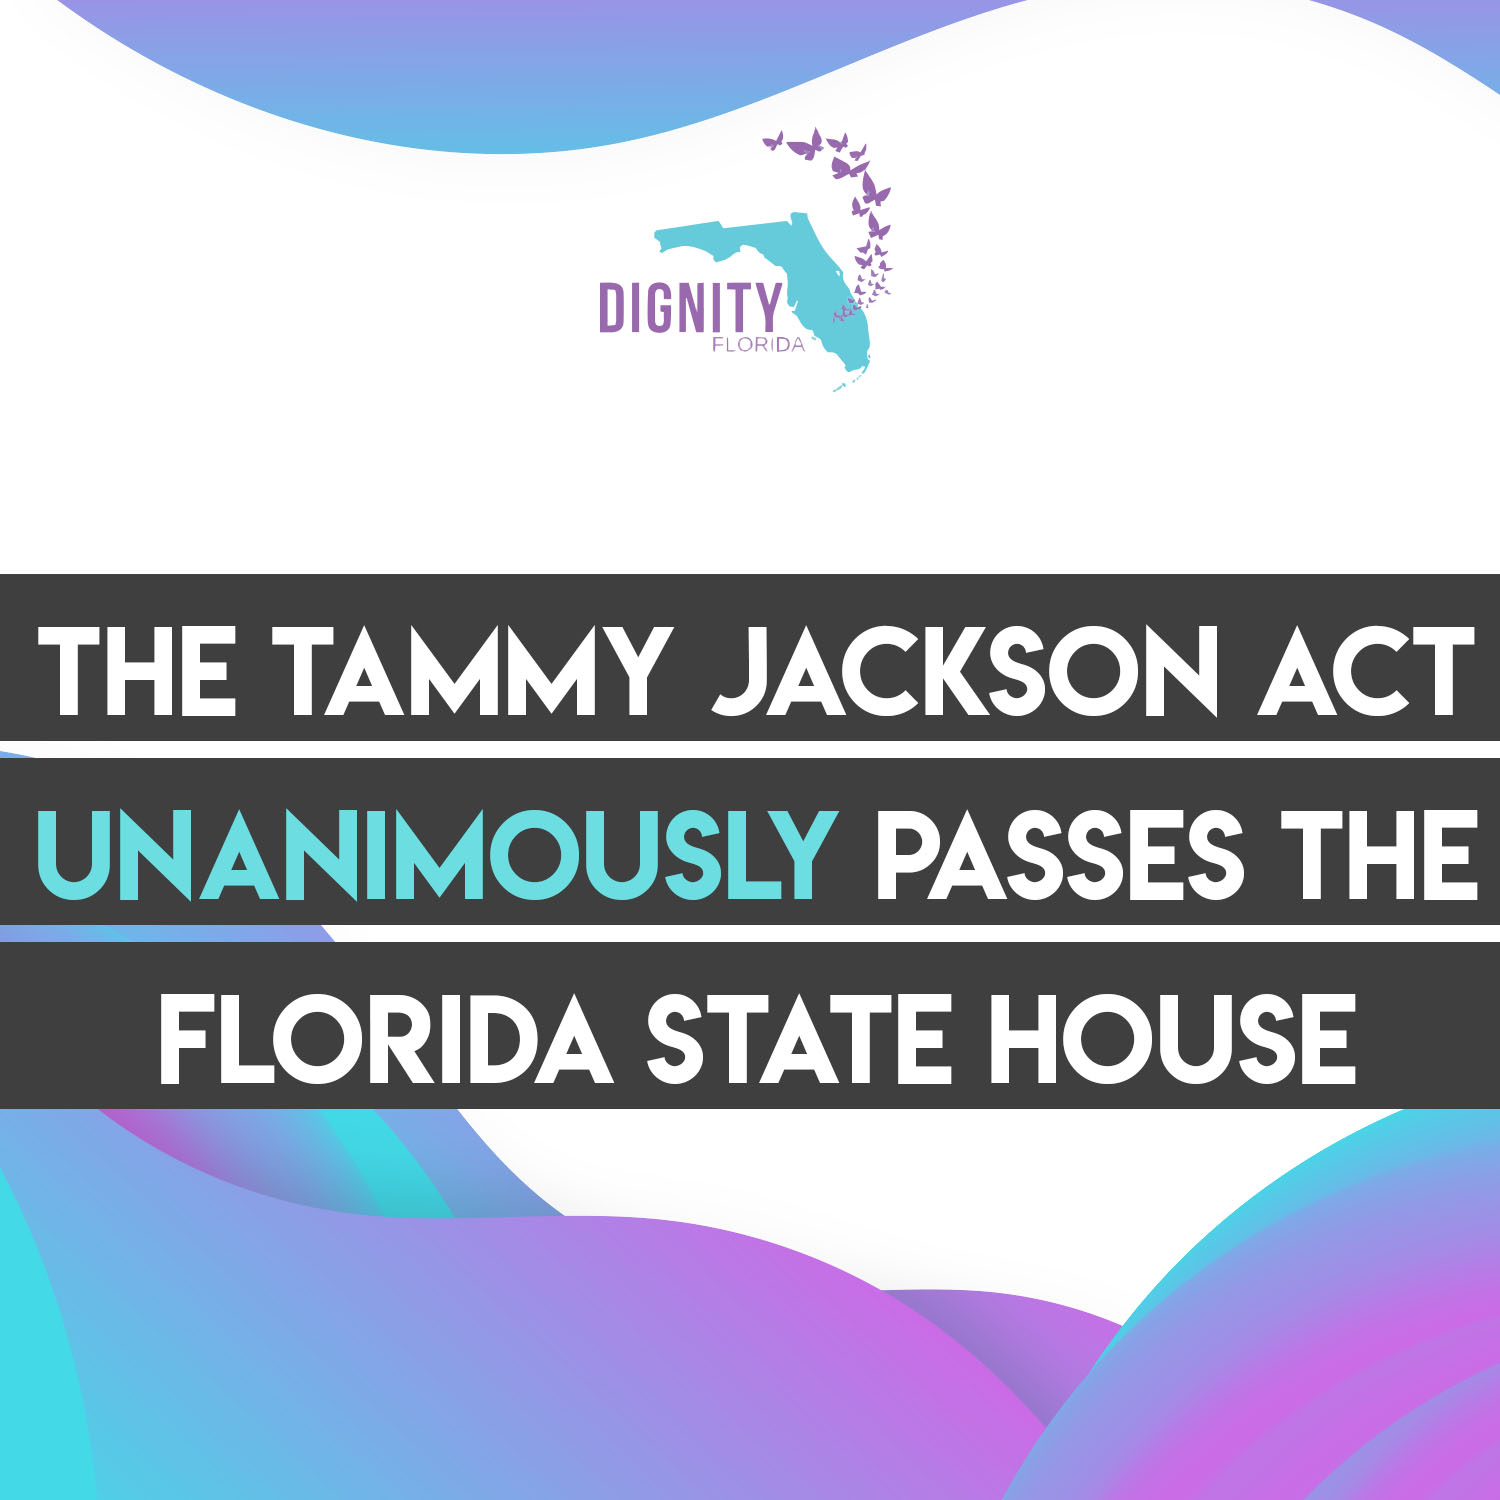 BREAKING: 'Tammy Jackson Act' Unanimously Passes the Florida State House